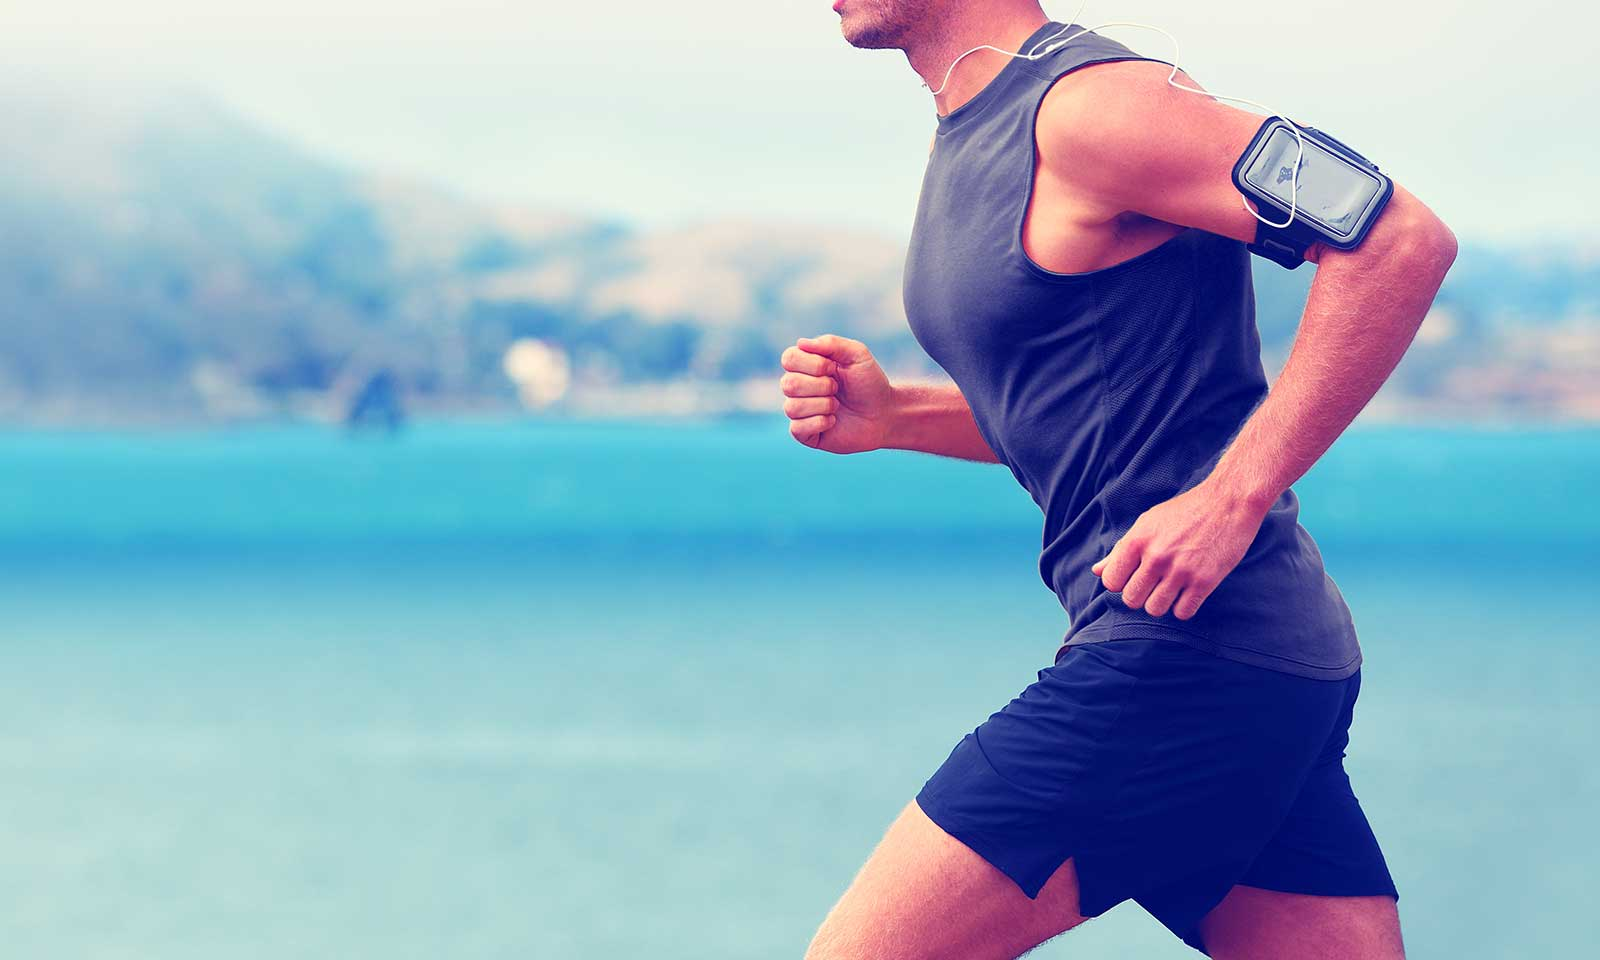 5 Diet And Fitness Tips To Help You Reach Your Goals